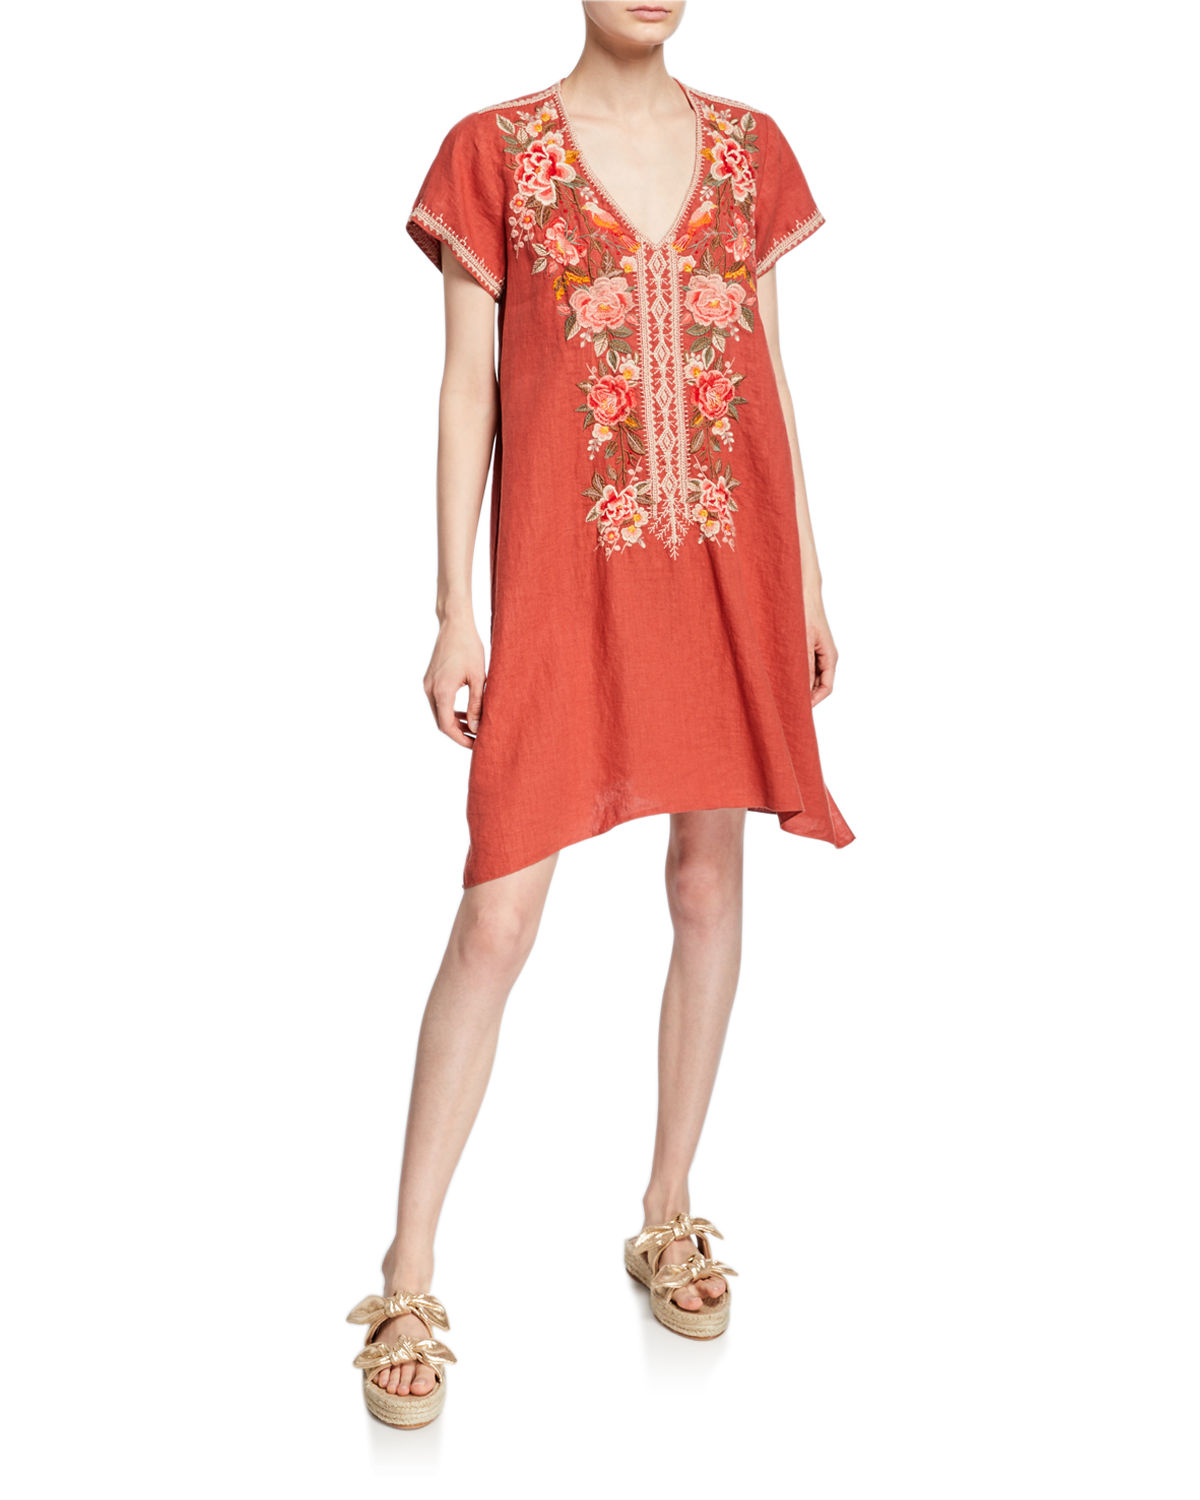 Johnny Was Dresses PLUS SIZE PAOLA FLORAL EMBROIDERED SHORT-SLEEVE DRAPED LINEN TUNIC DRESS